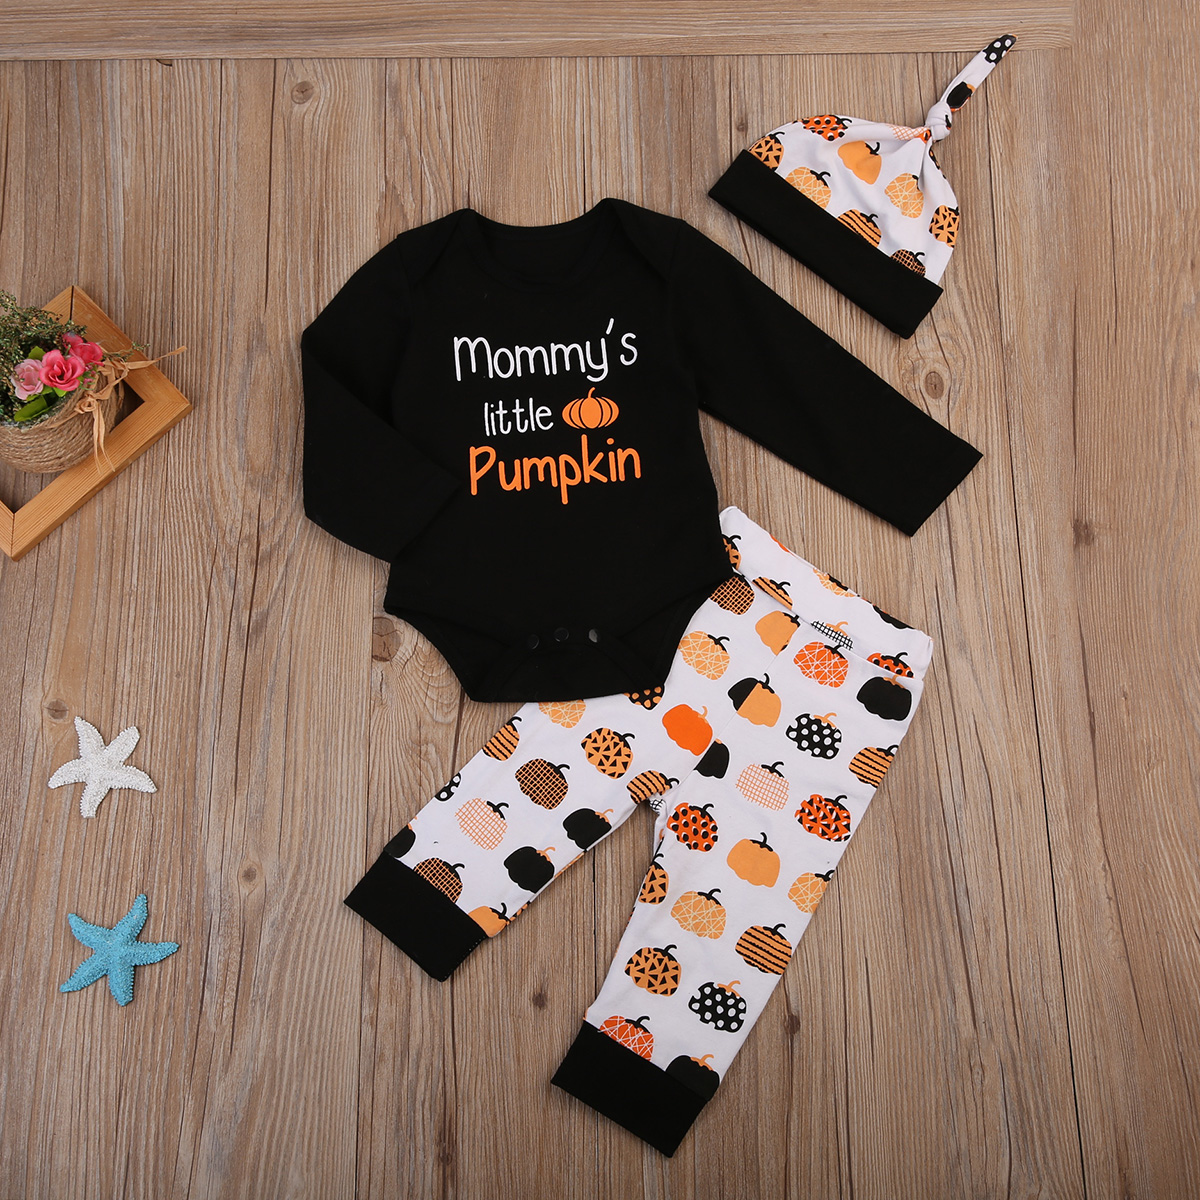 17 Cute Halloween Newborn Baby Boys Girls Winter Clothes Long Sleeve Romper Pants Leggings Cotton Pumpkin Print Outfit 3pcs 3